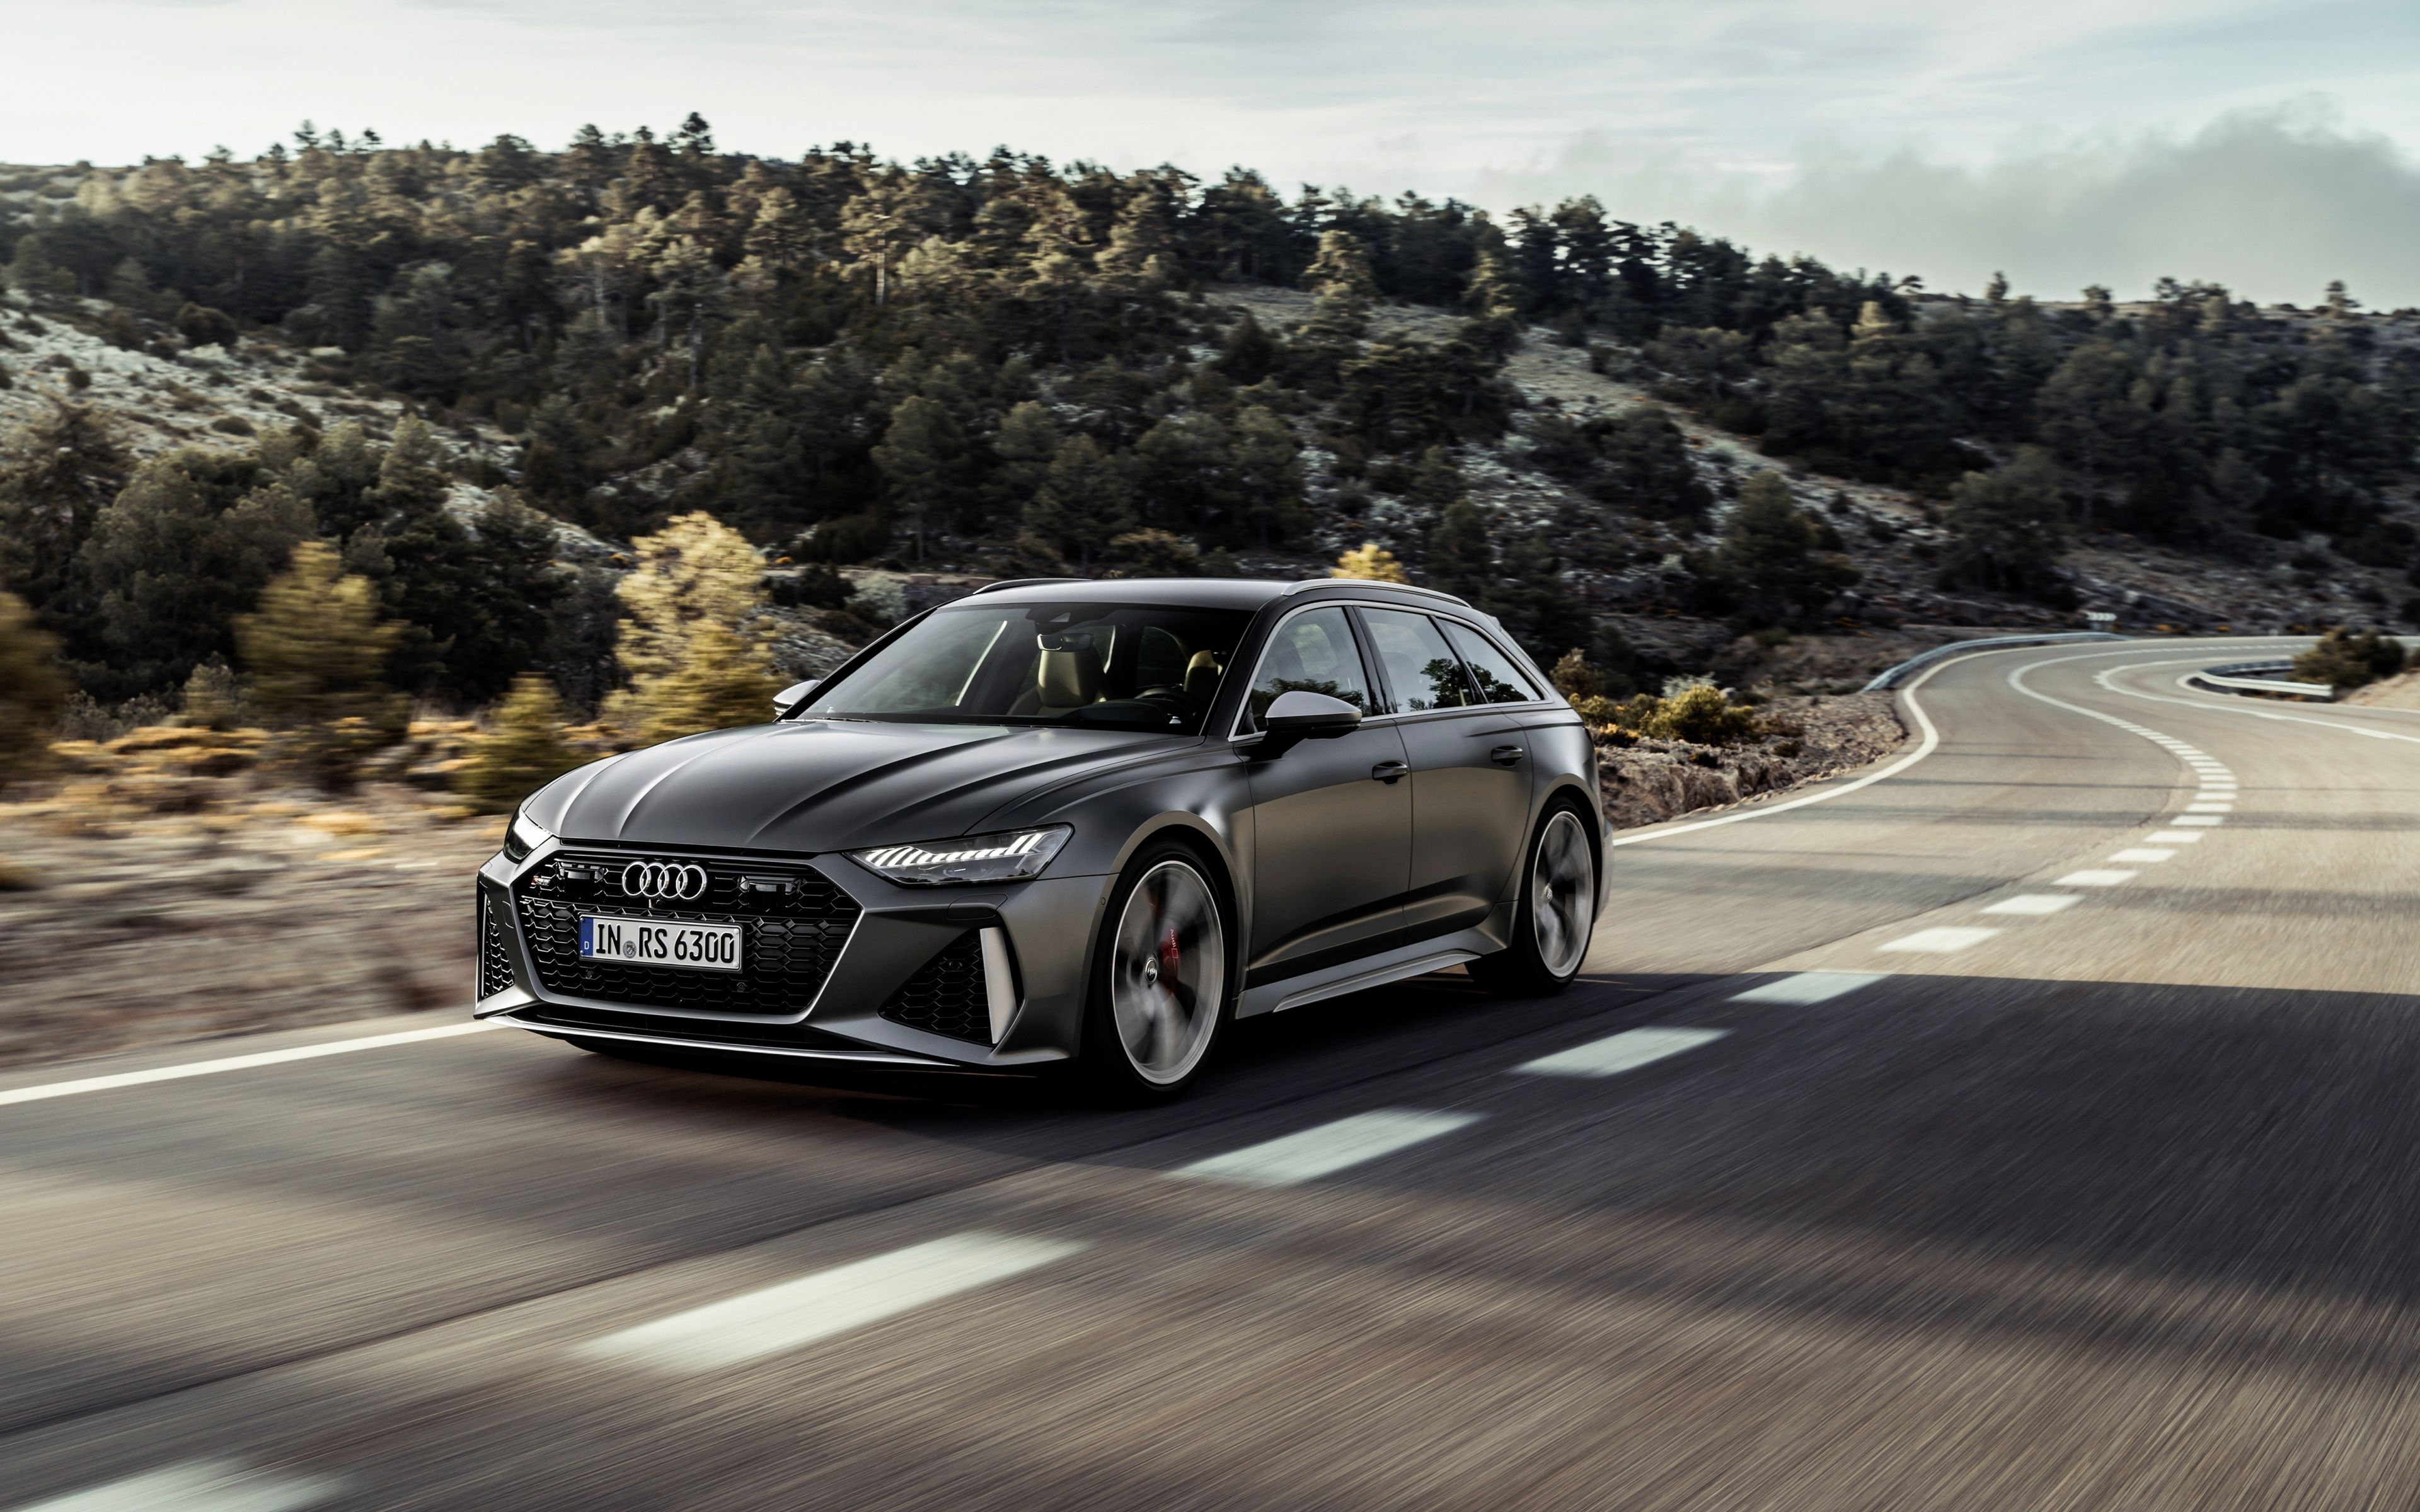 3840x2400 Black Car 2021 Audi Rs6 Avant Wallpaper Audi Rs6 Black Audi Audi